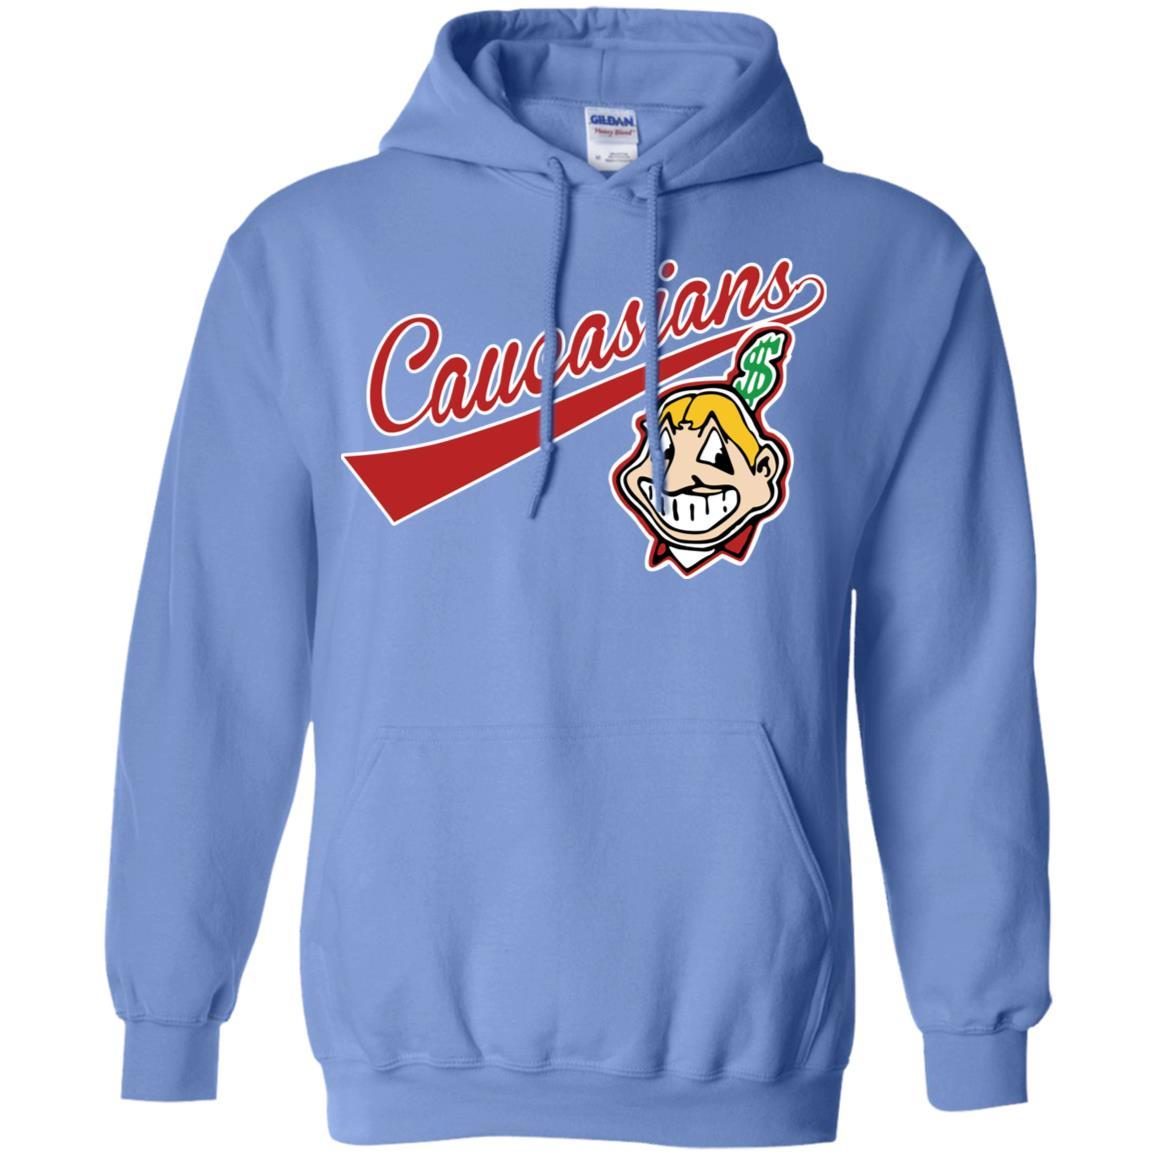 Cleveland Caucasians Native Go Indians - Pullover Hoodie Carolina Blue / 5XL